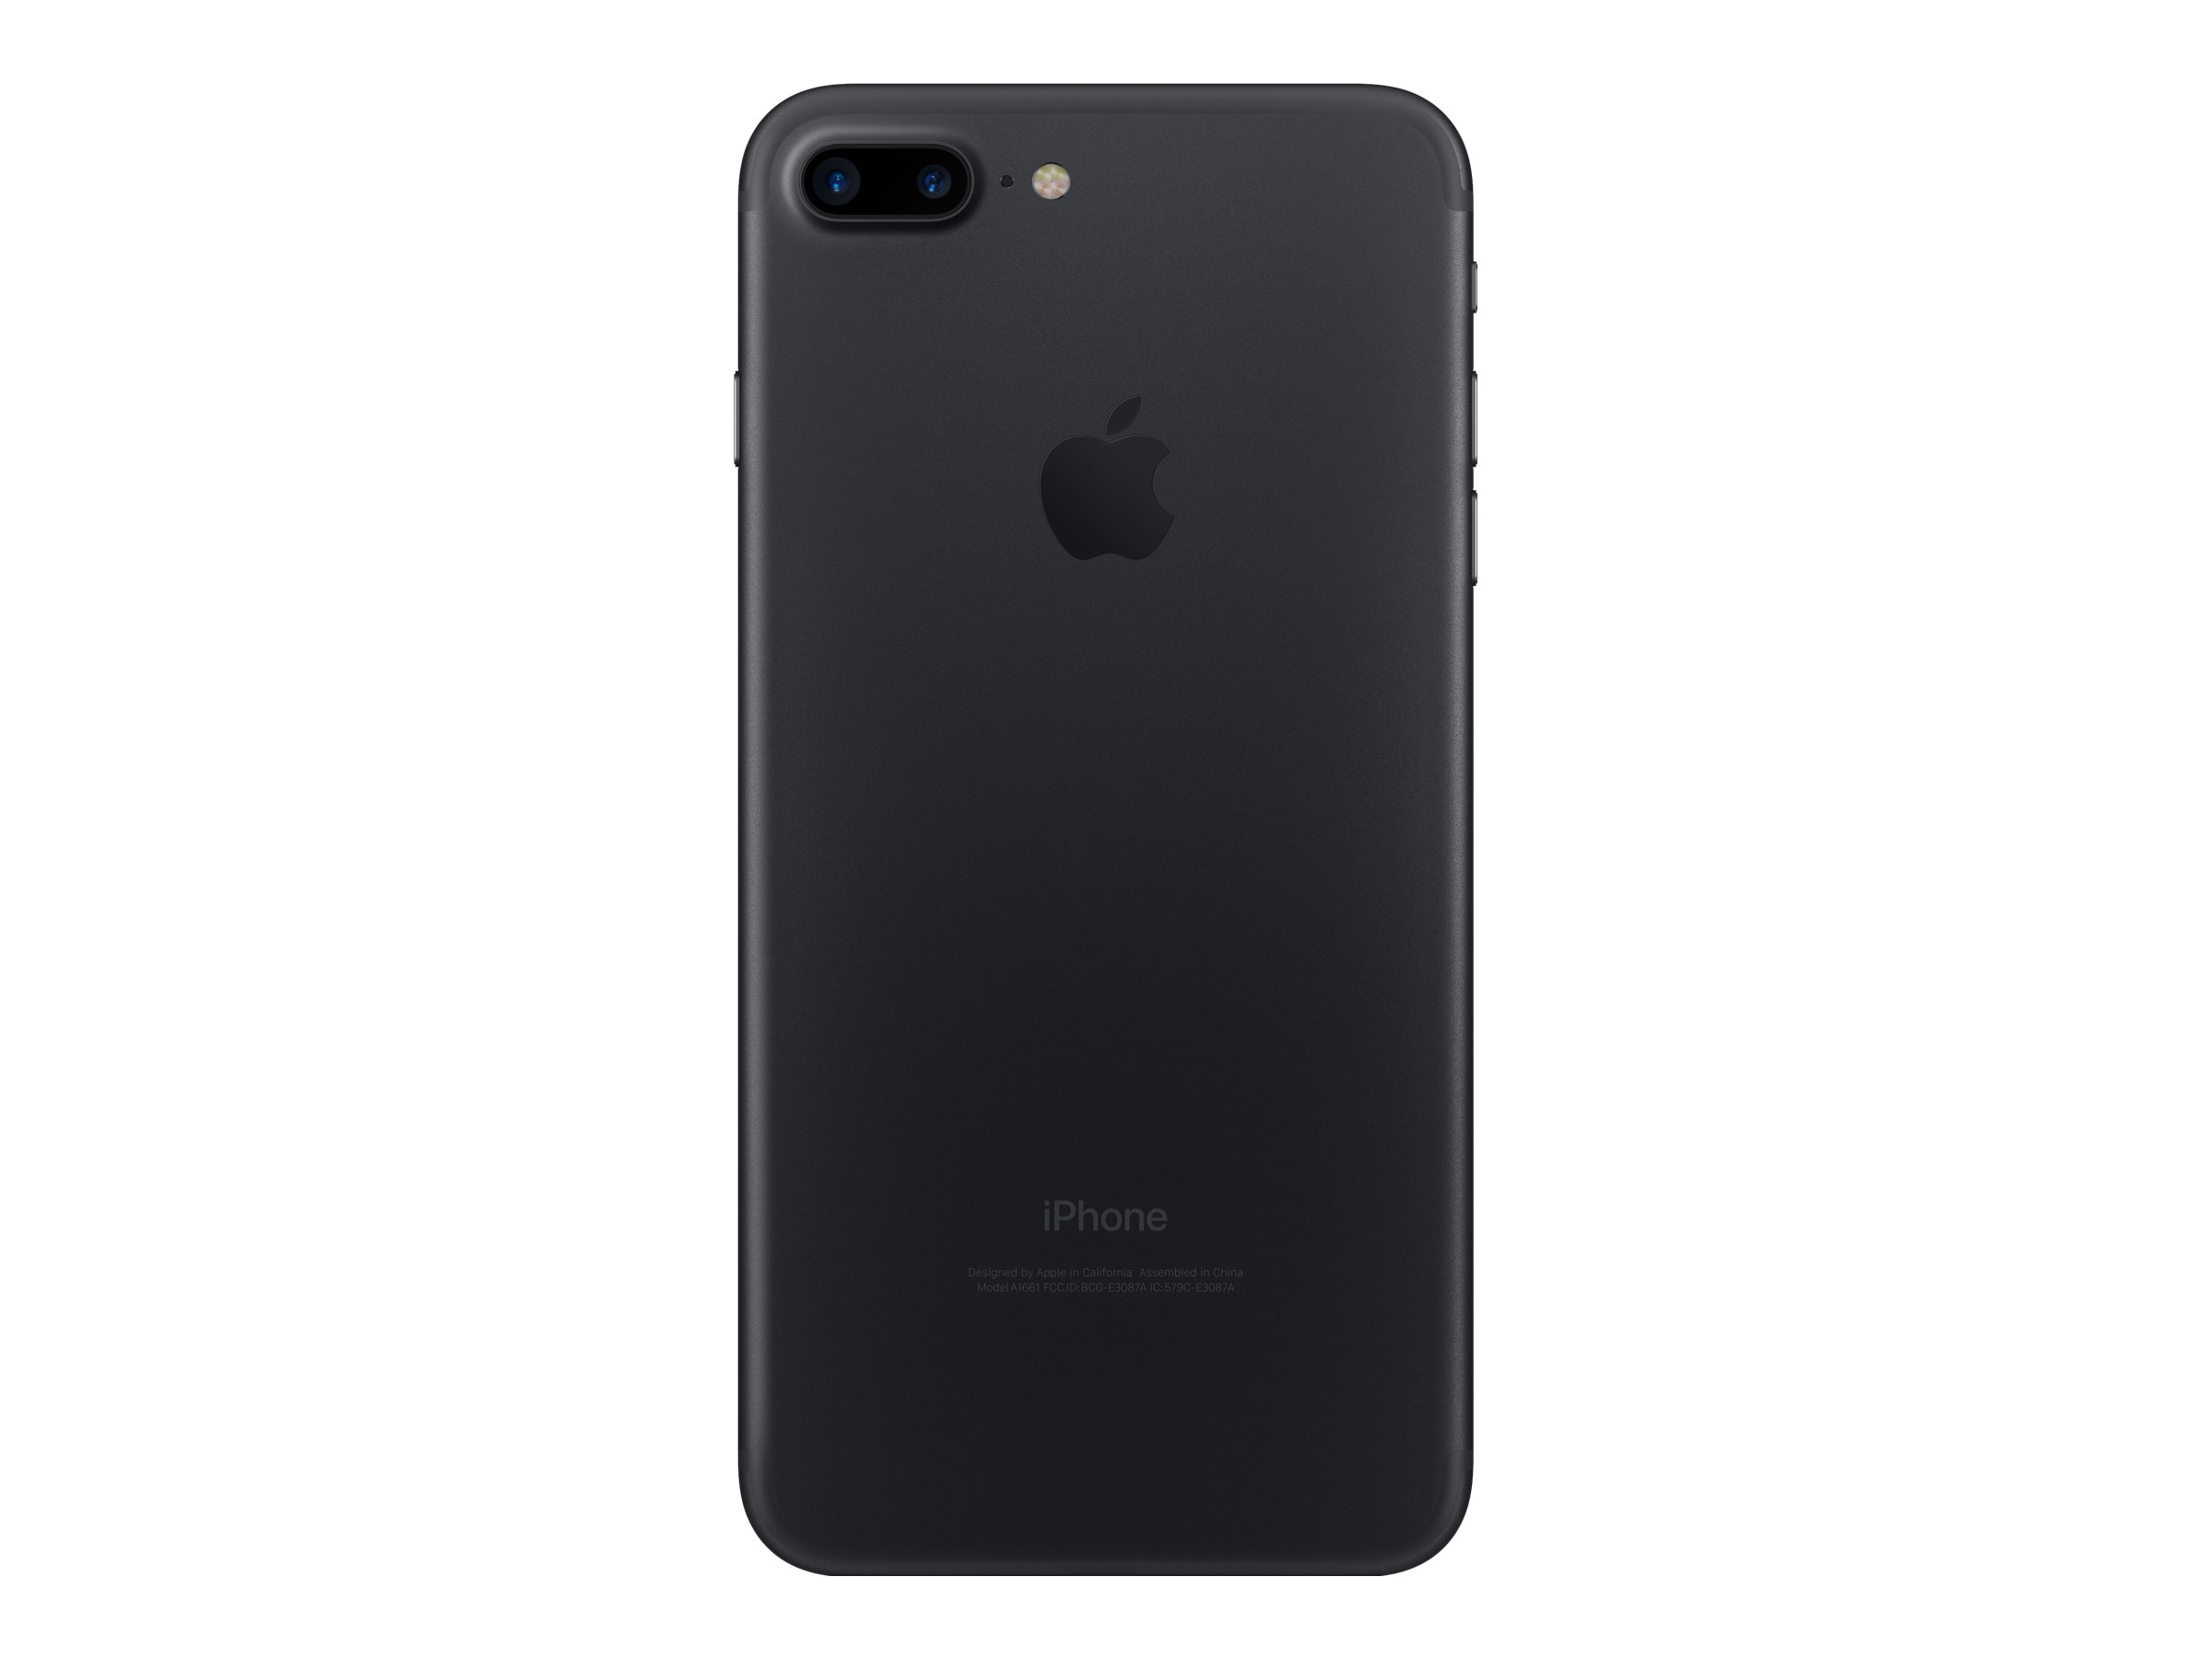 Apple iPhone 7 Plus 32GB Black O2C